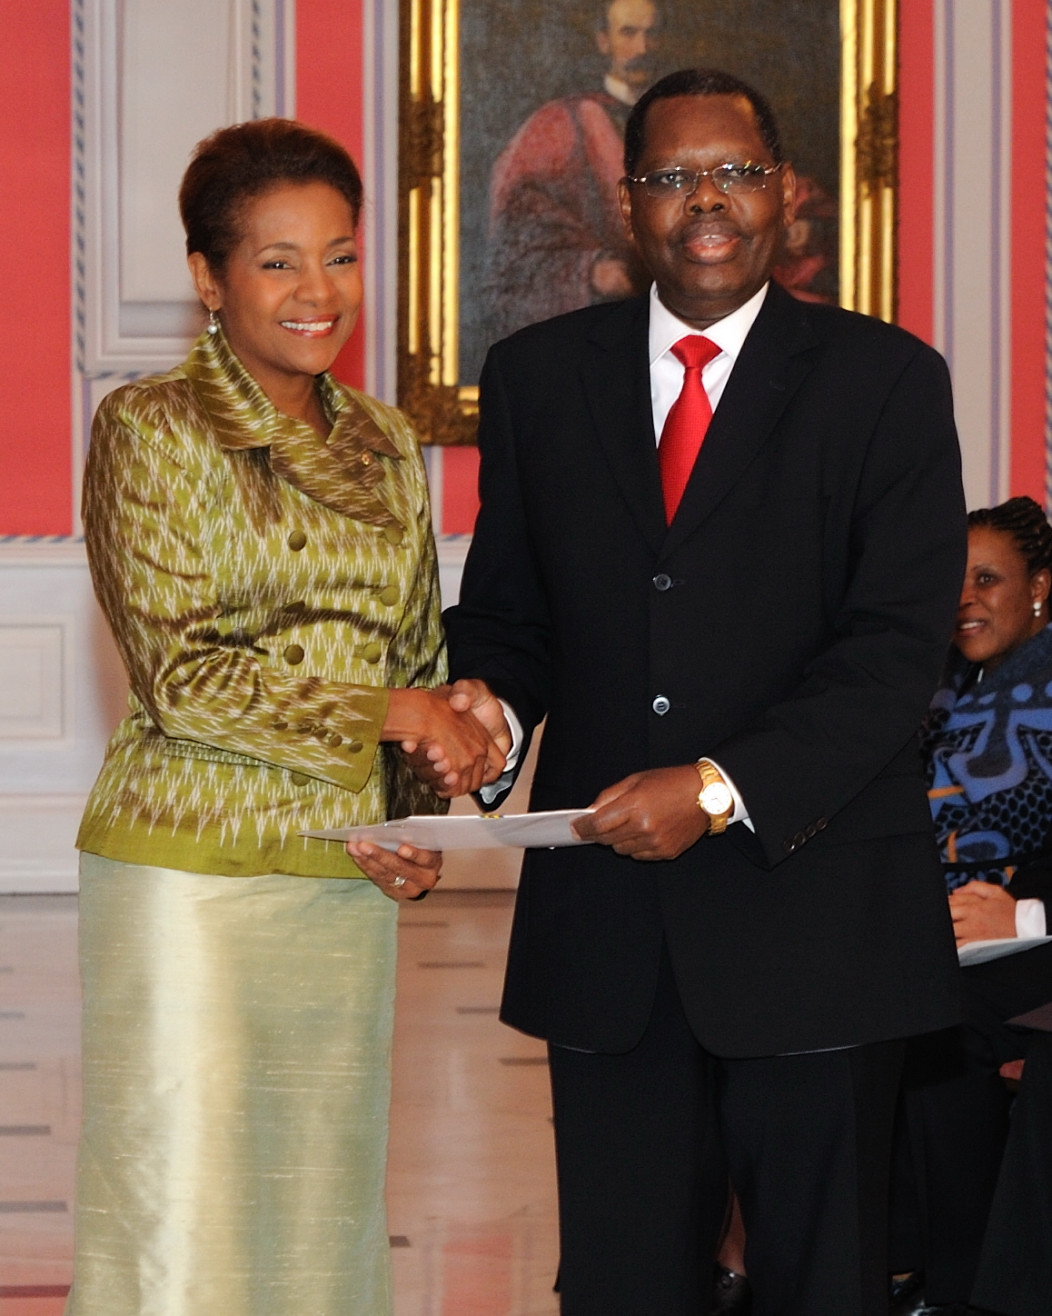 Her Excellency the Right Honourable Michaëlle Jean, Governor General of Canada, received the credentials of His Excellency Alex Crescent Massinda, High Commissioner designate of the United Republic of Tanzania.